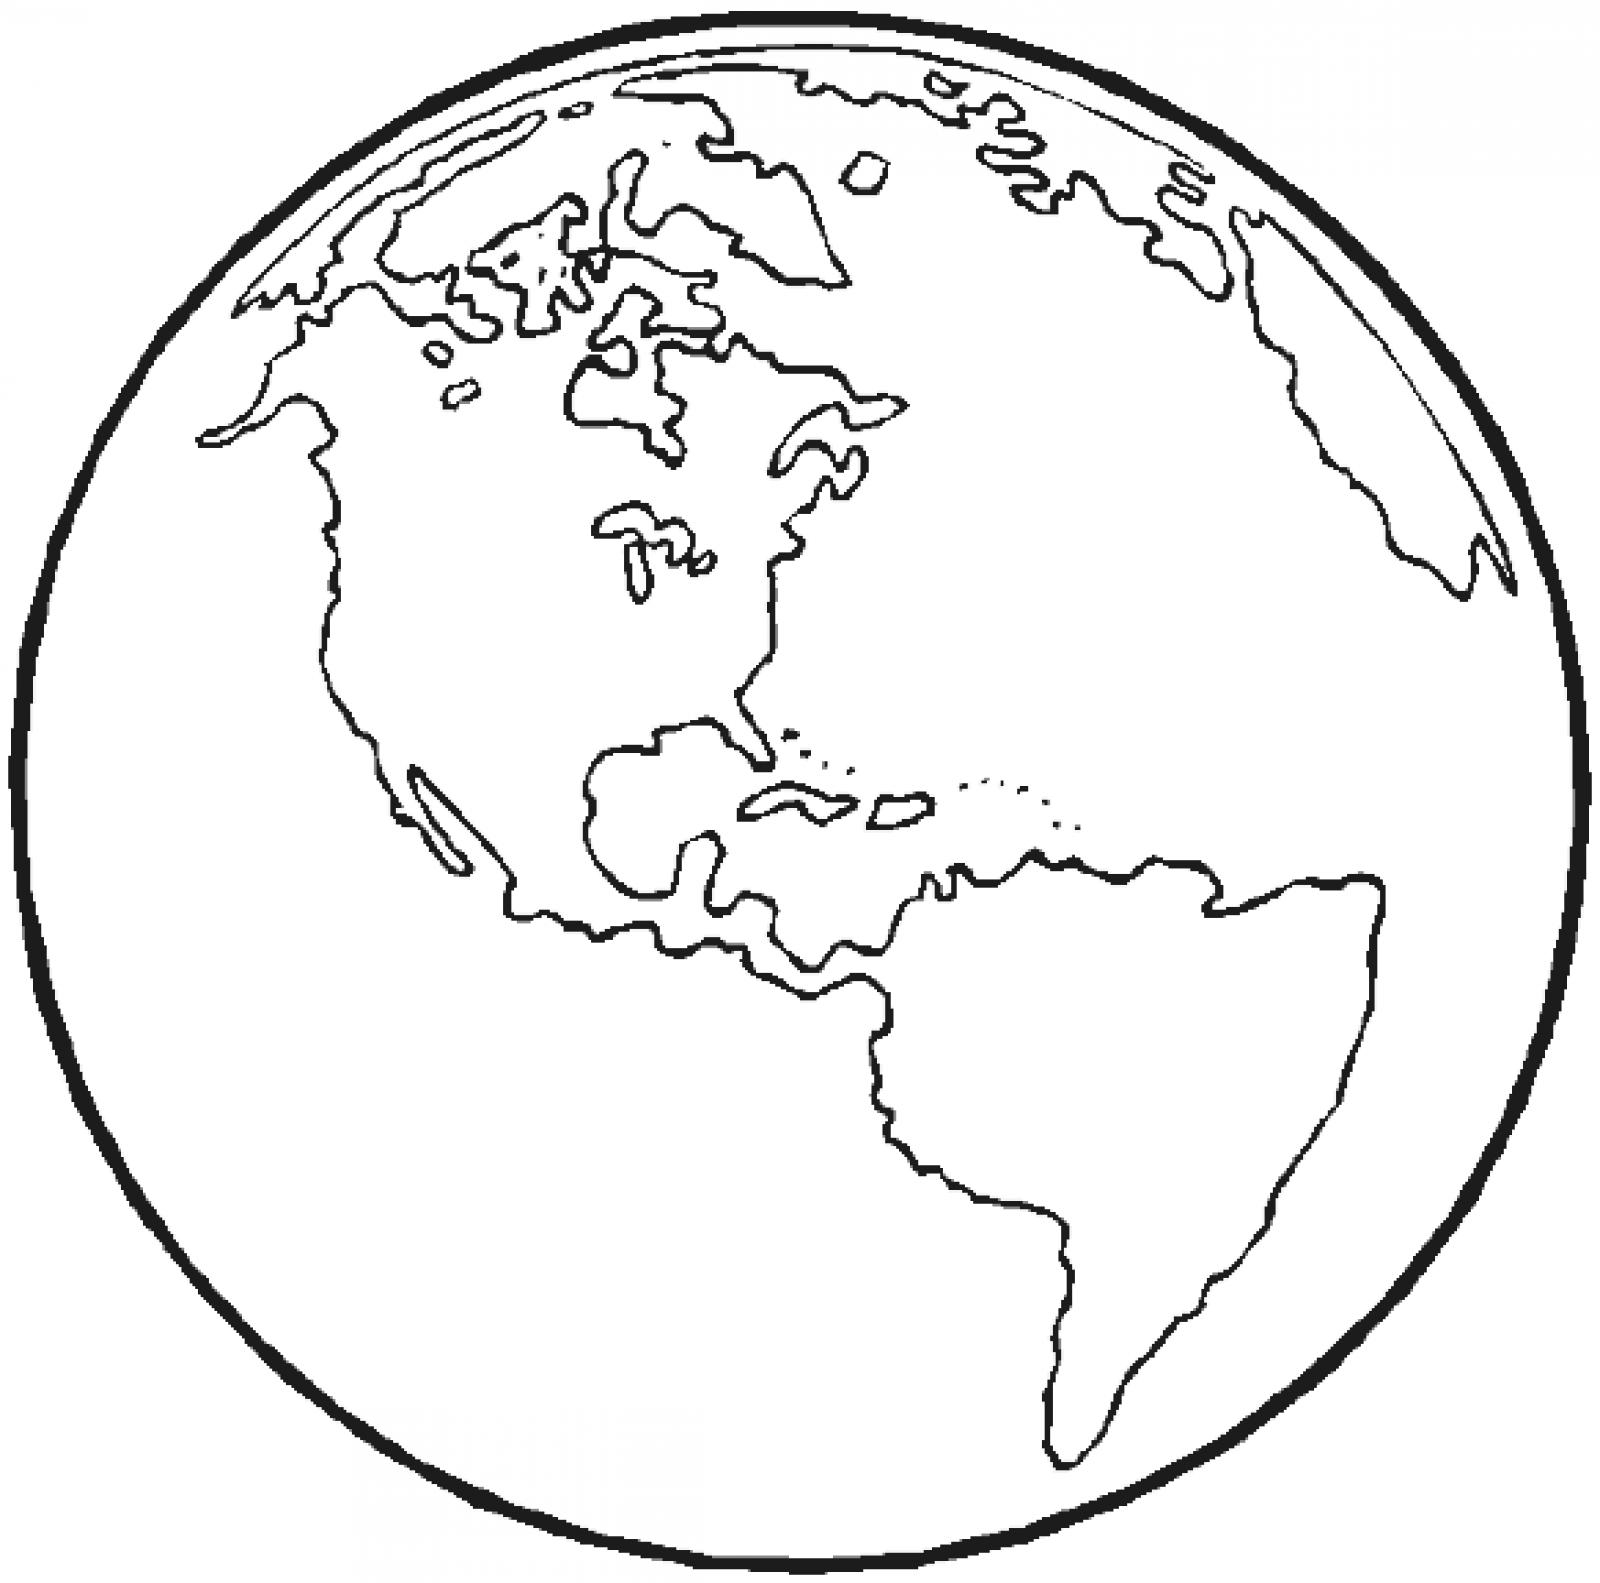 1600x1583 World Coloring Pages Coloringsuite Com Inside